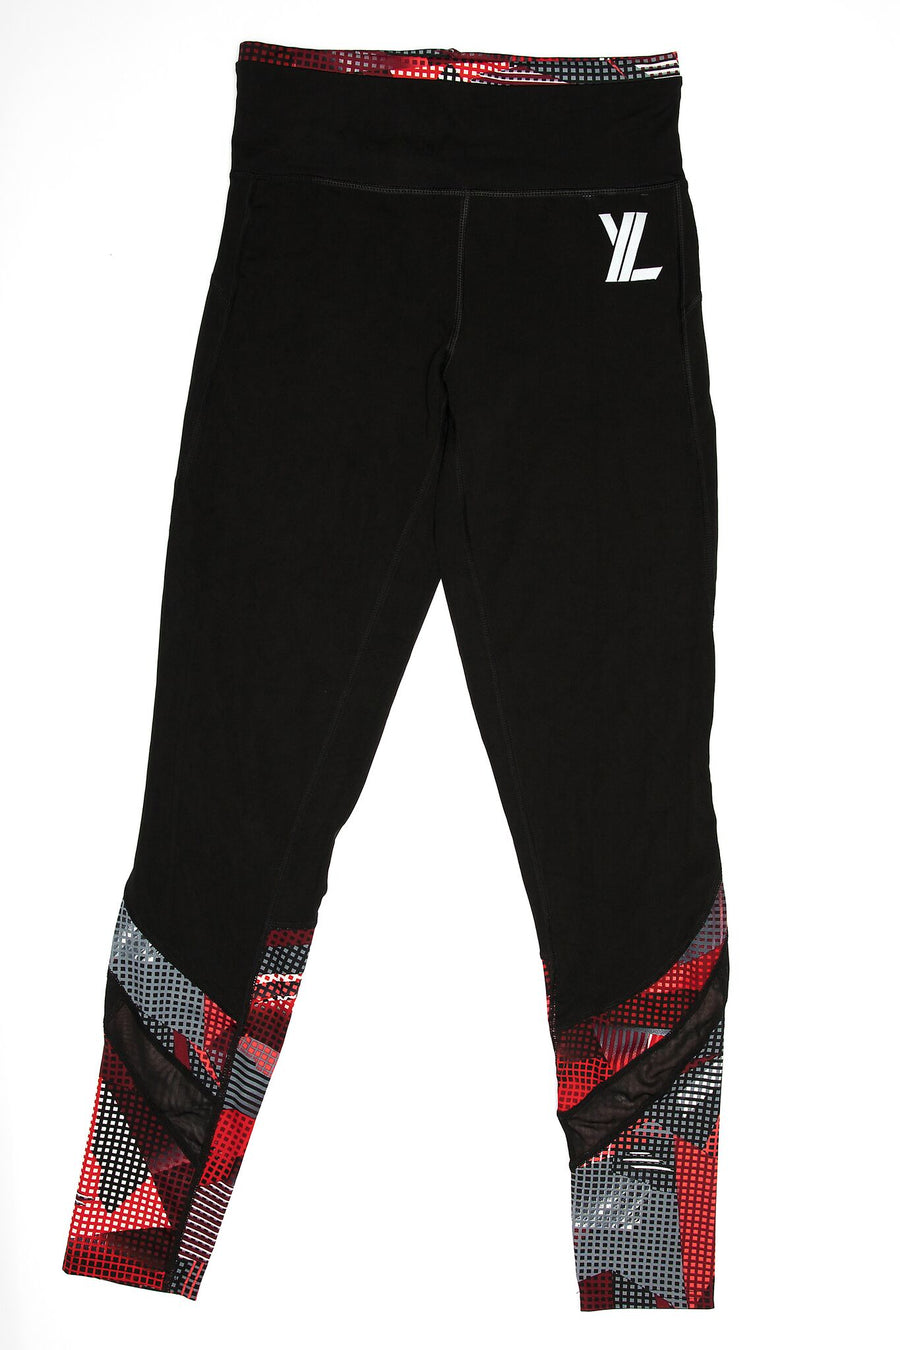 YL Logo Leggings in Red